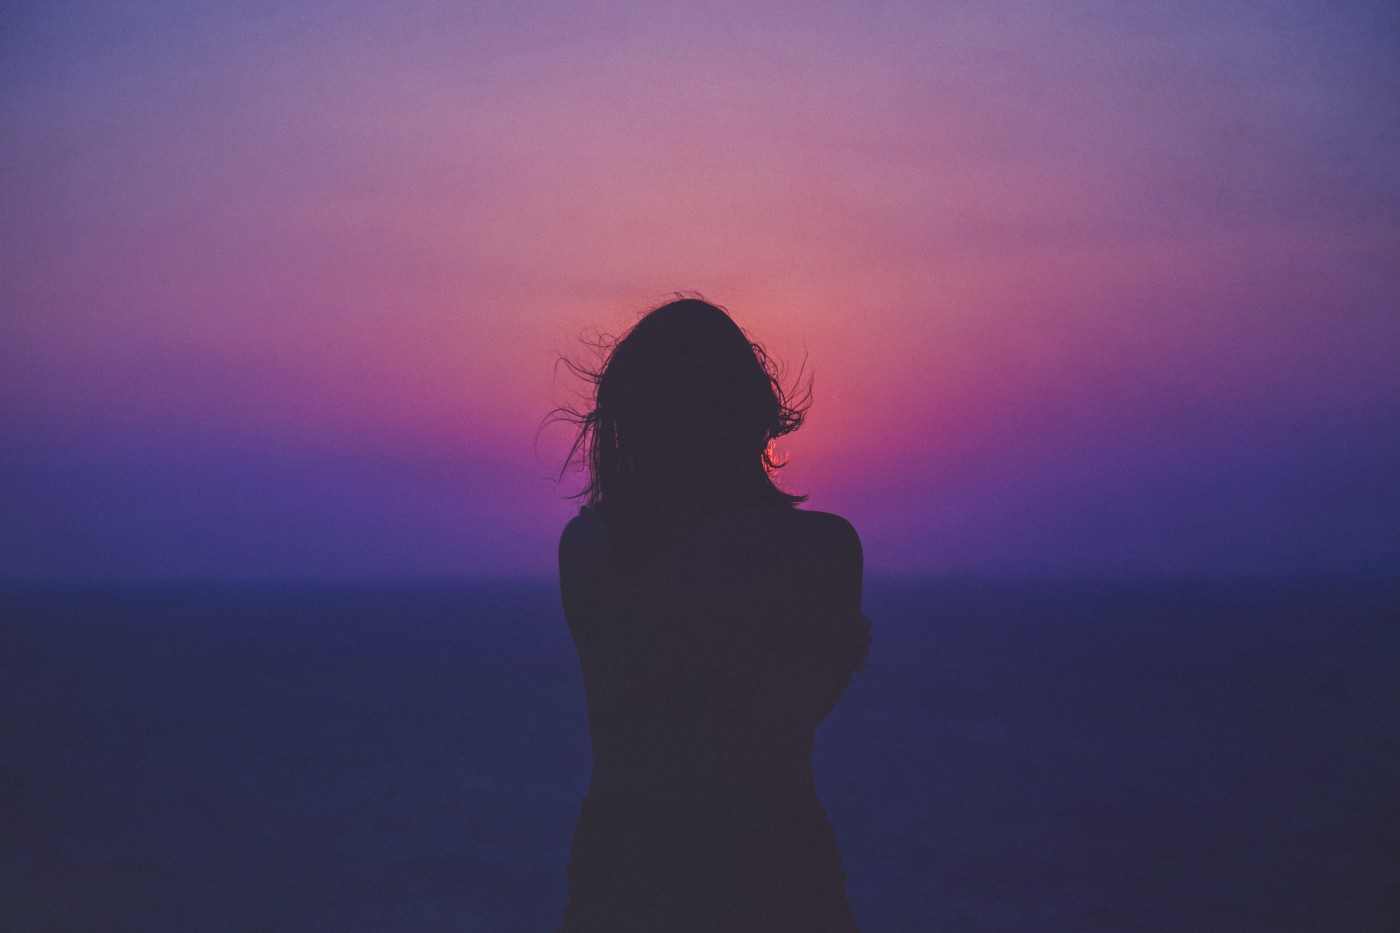 Woman hugs herself while looking out at beautiful sunset.